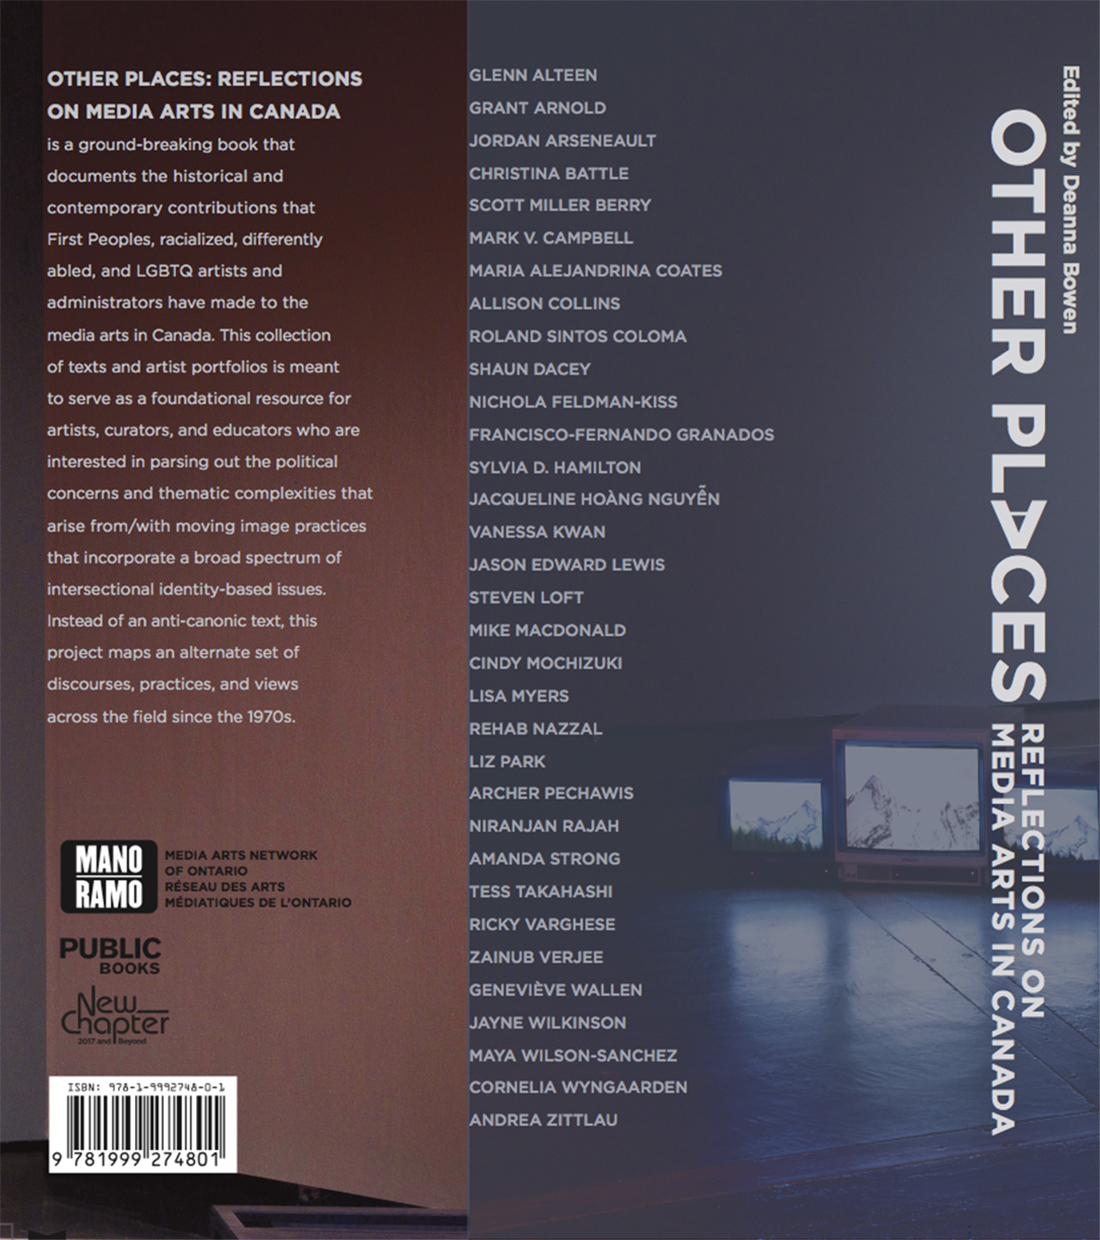 Back cover of the Other Places book